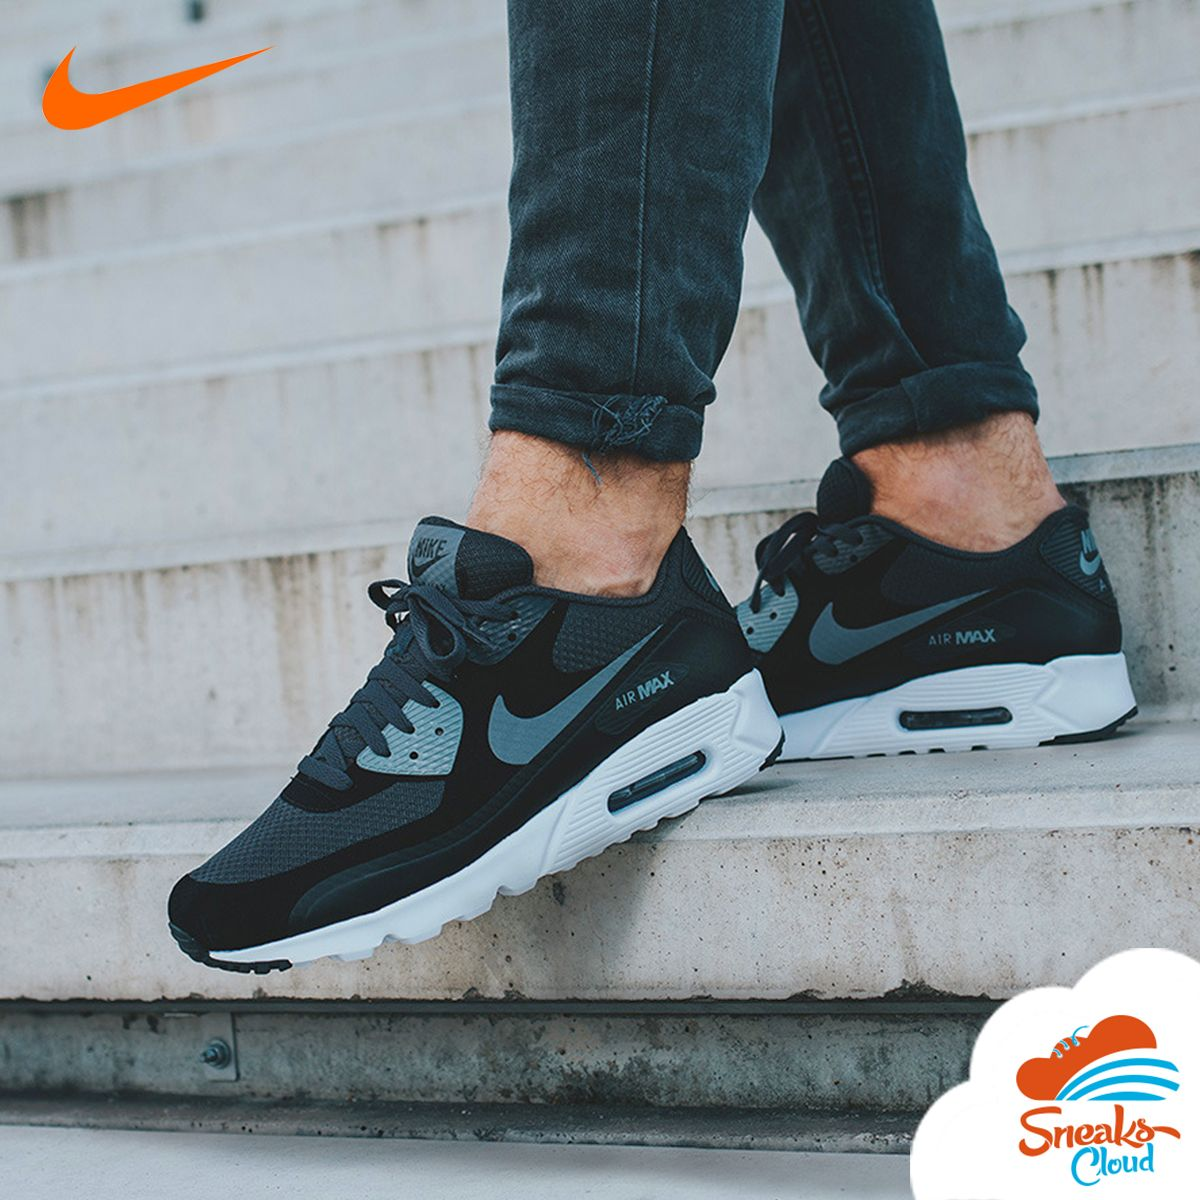 Nike Air Max 90 Ultra SE Black White Anthracite Men's Shoes - visit our  website for more information and prices.